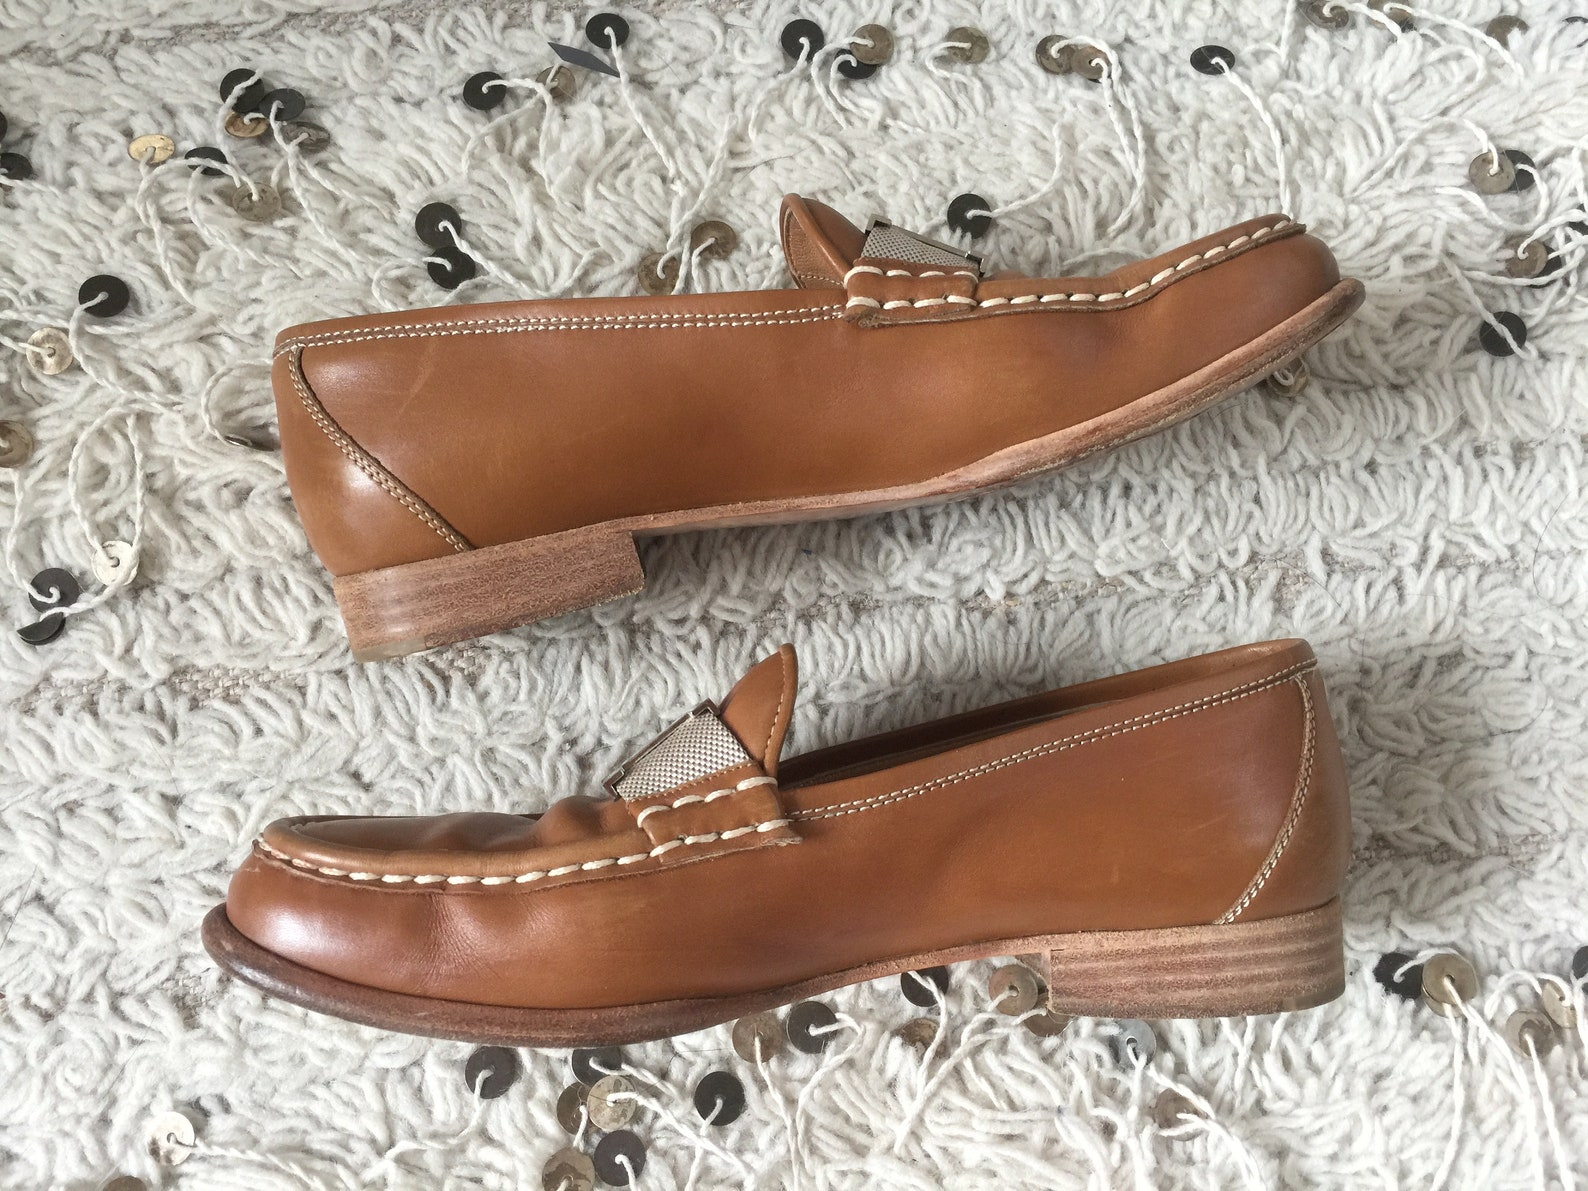 vintage hermes h logo brown leather webbing loafers flats driving shoes smoking slippers ballet flats eu 37 us 6.5 - 7